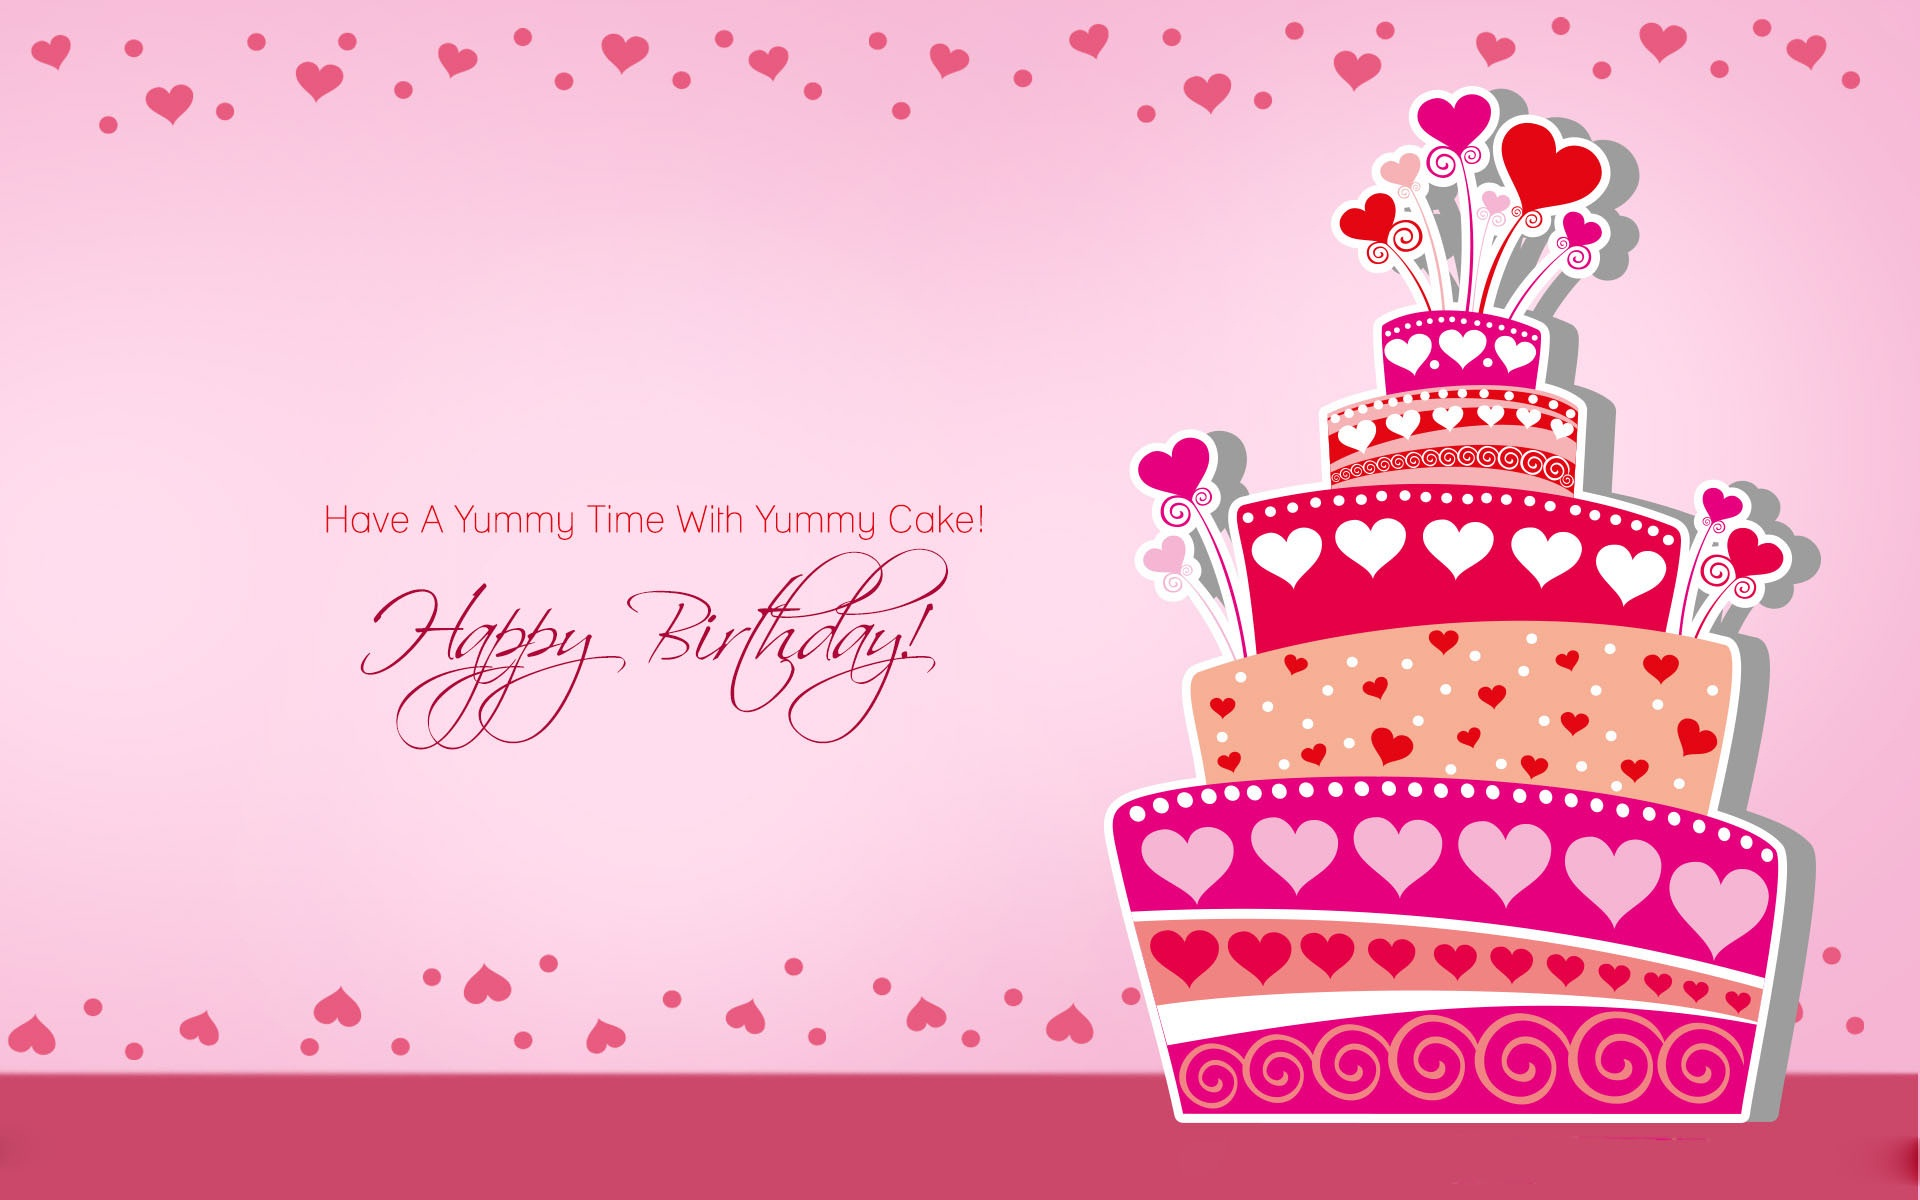 birthday hd images with quotes ; Happy-birthday-best-wishes-cake-and-quotes